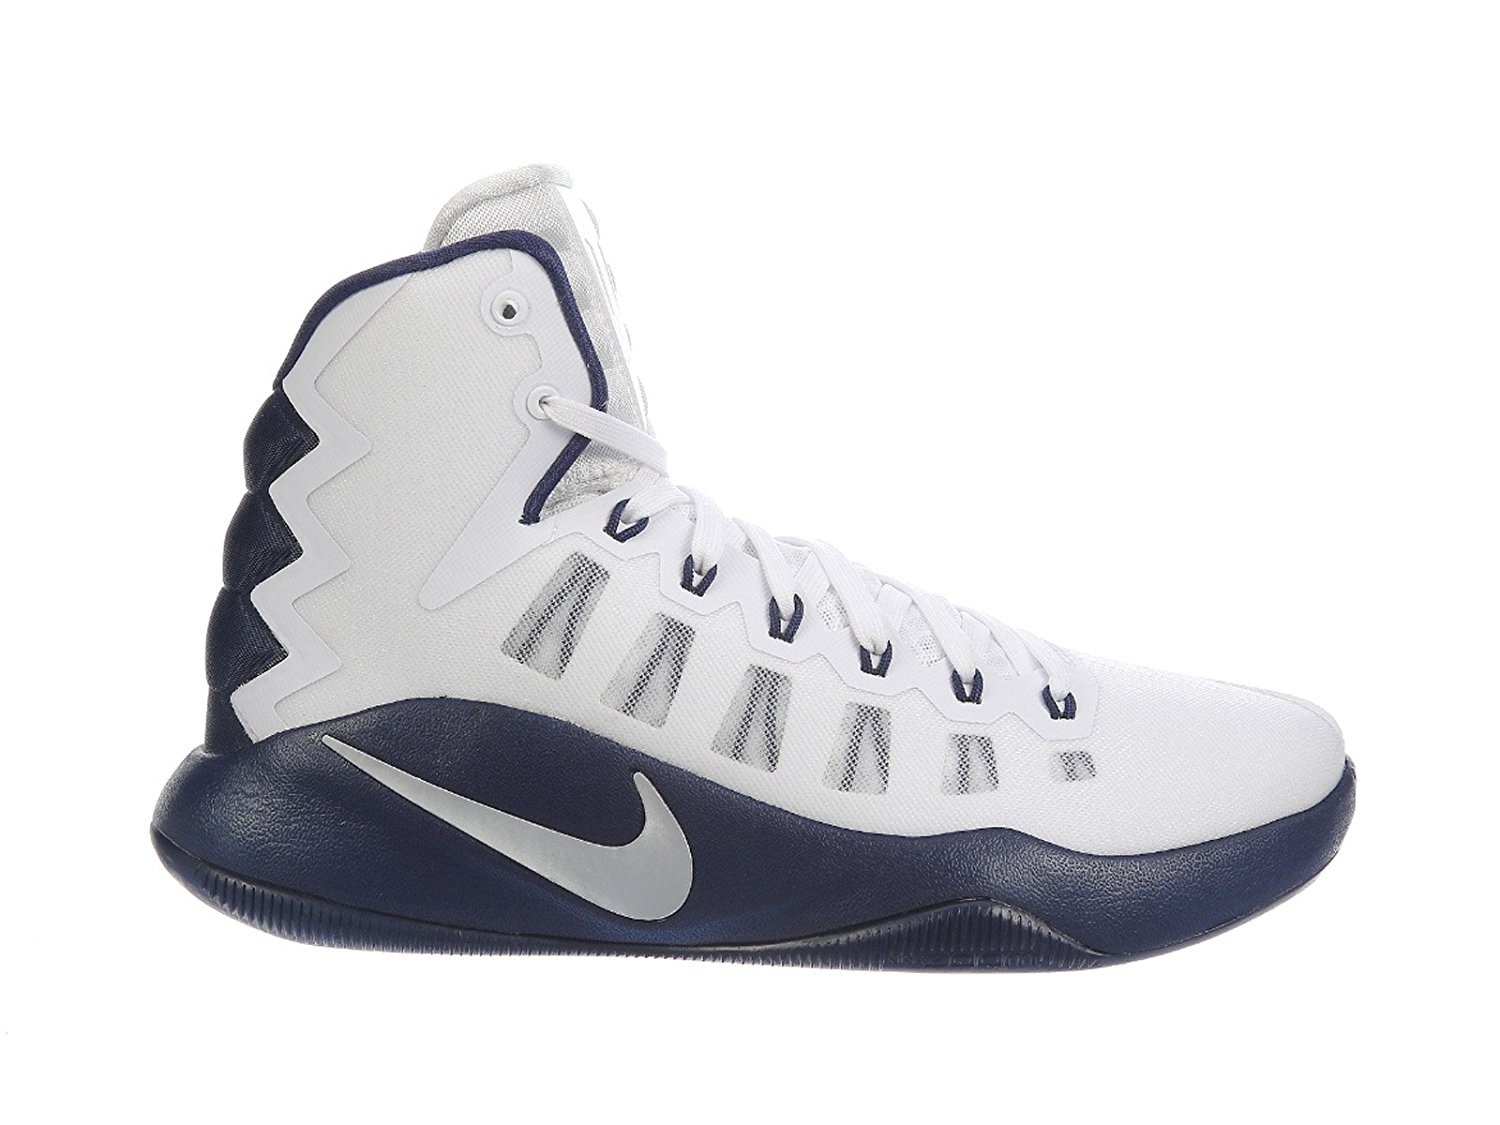 b098540f52af Get Quotations · Nike Men s Hyperdunk 2016 Synthetic Basketball Shoes